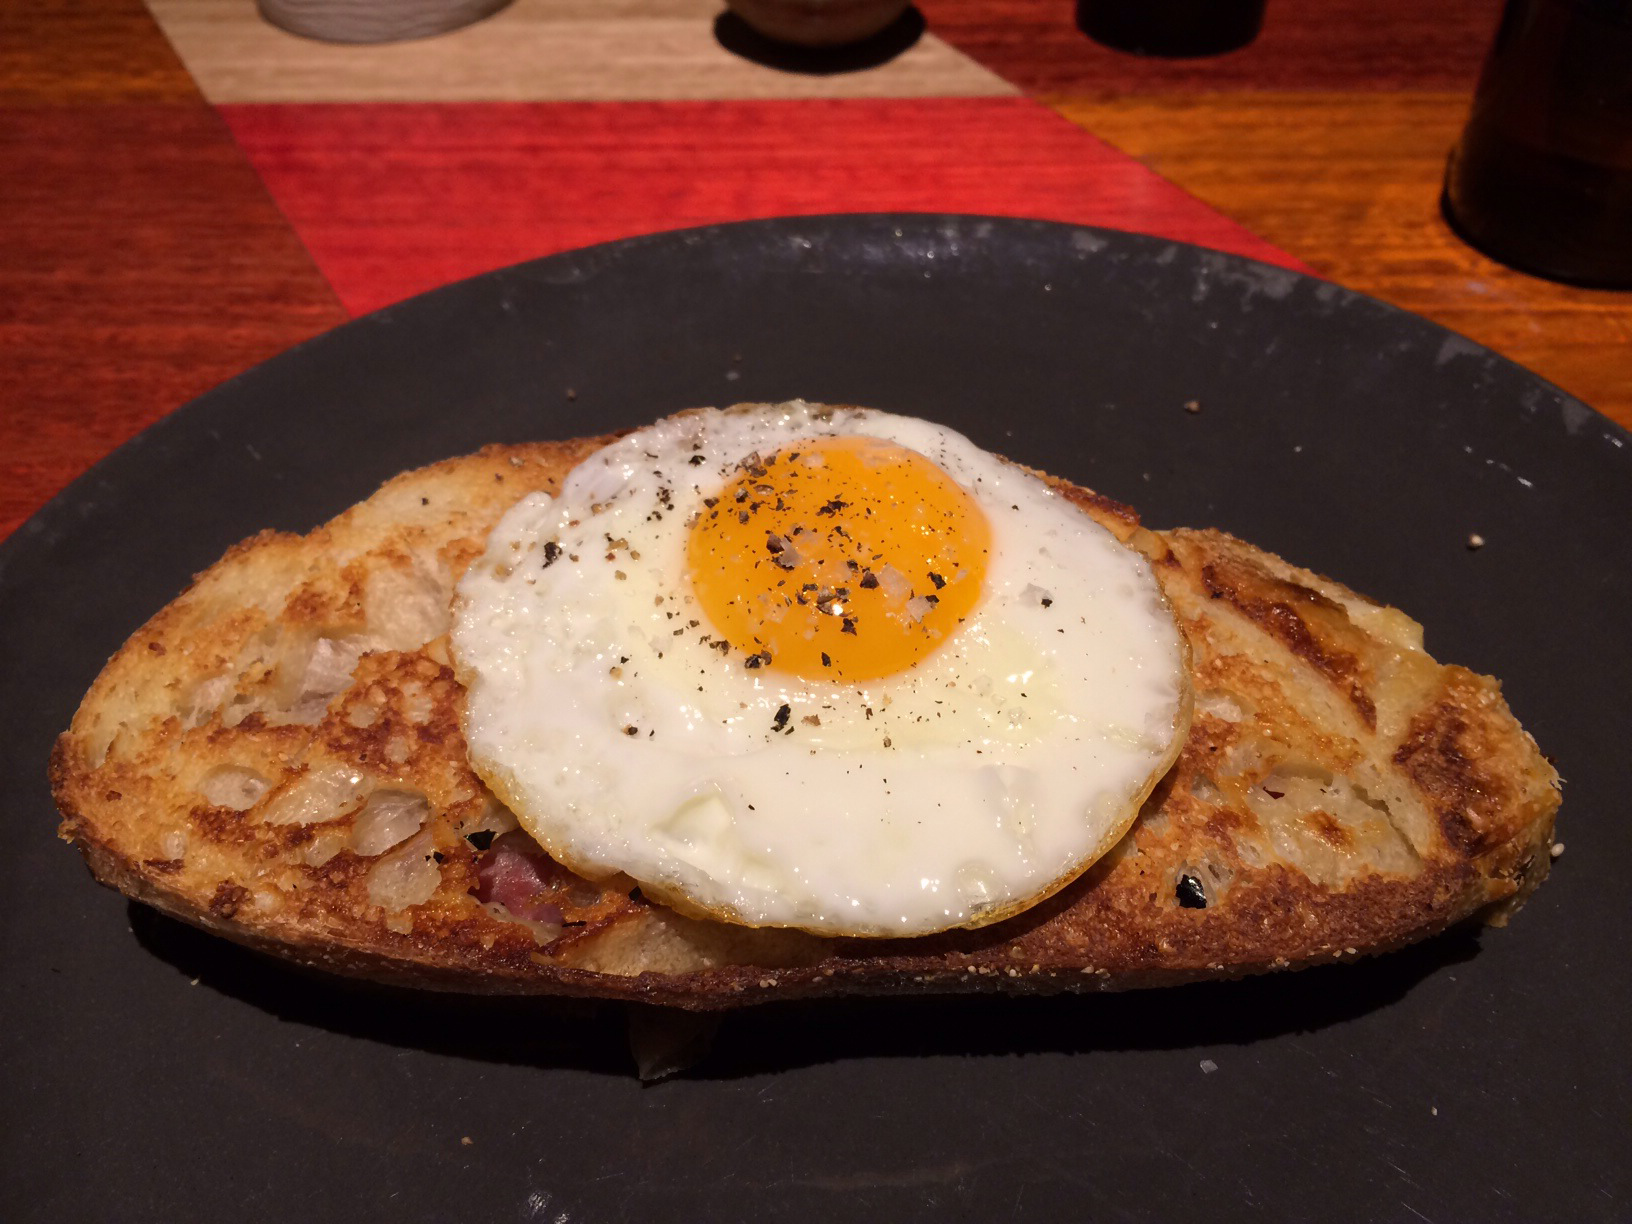 Bikini tostada, jamón serrano, and manchego on sourdough with a fried egg. Image courtesy of Bron.